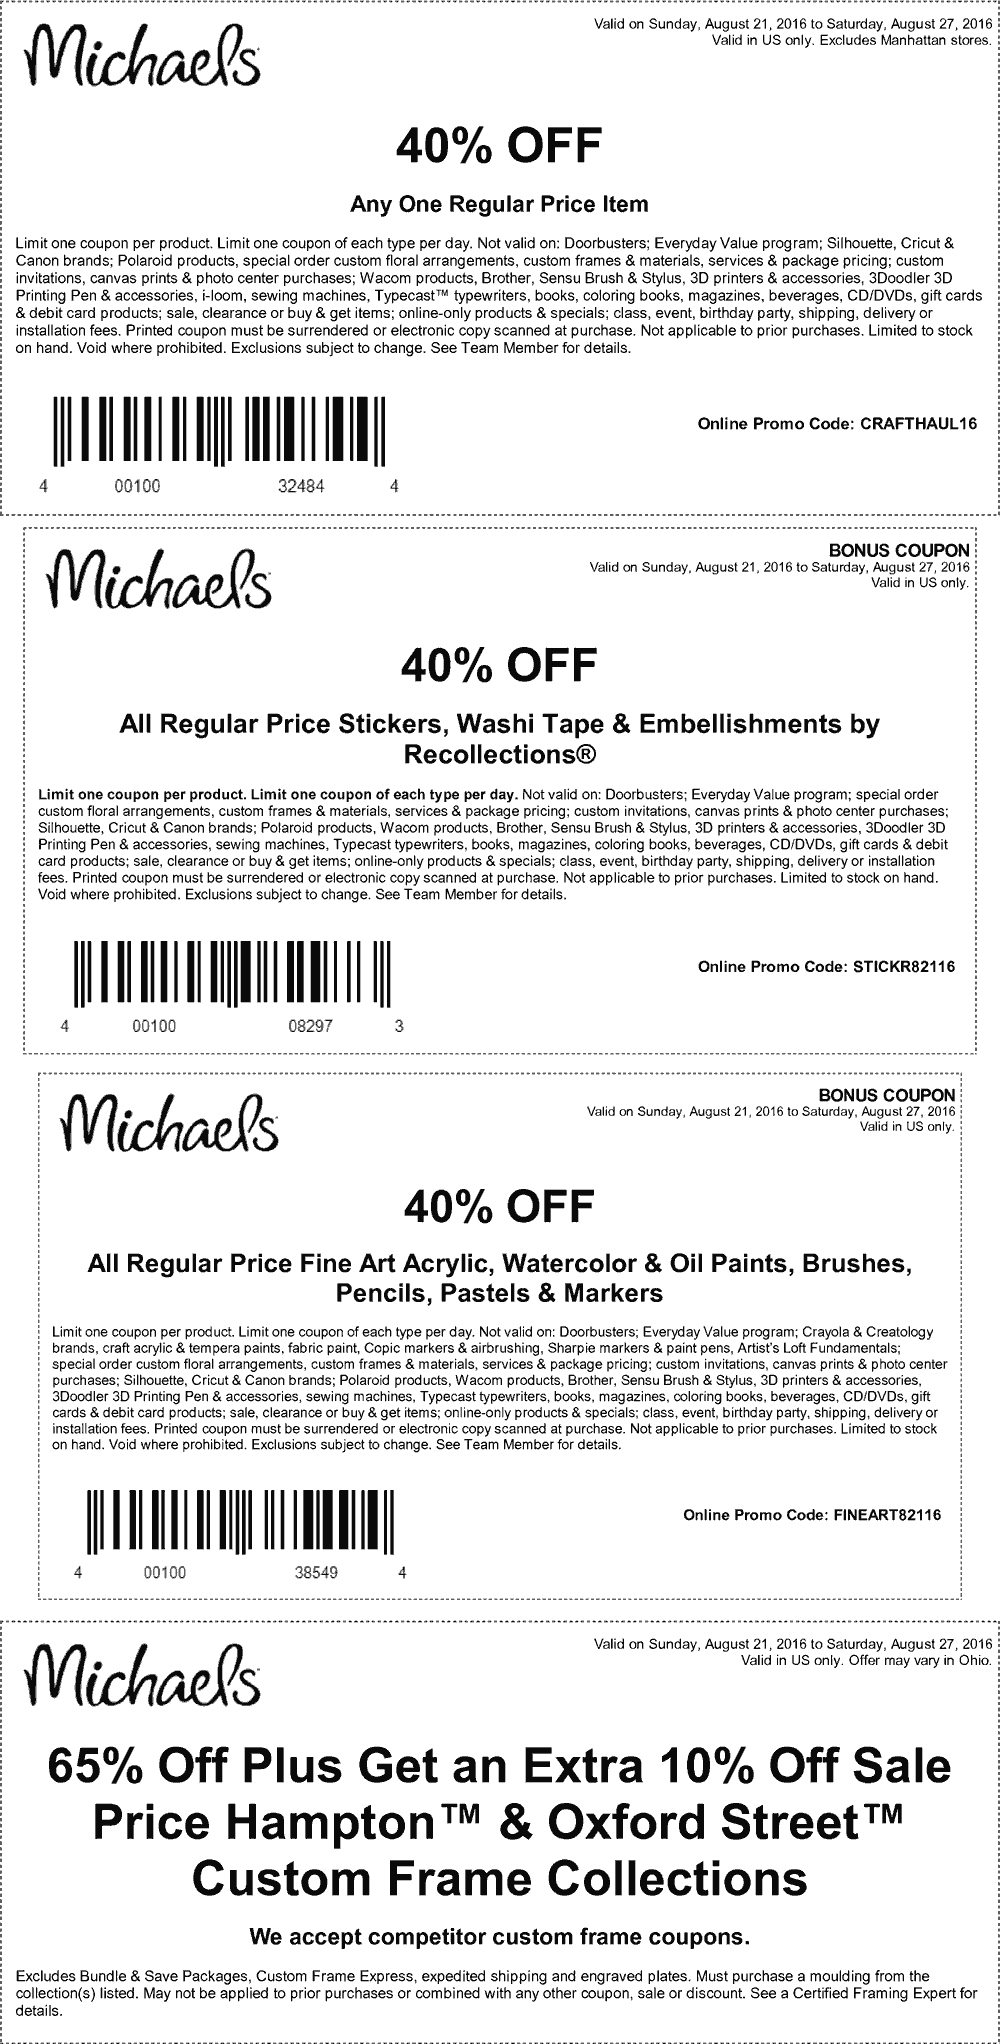 Michaels Coupon March 2017 40% off a single item at Michaels, or online via promo code CRAFTHAUL16